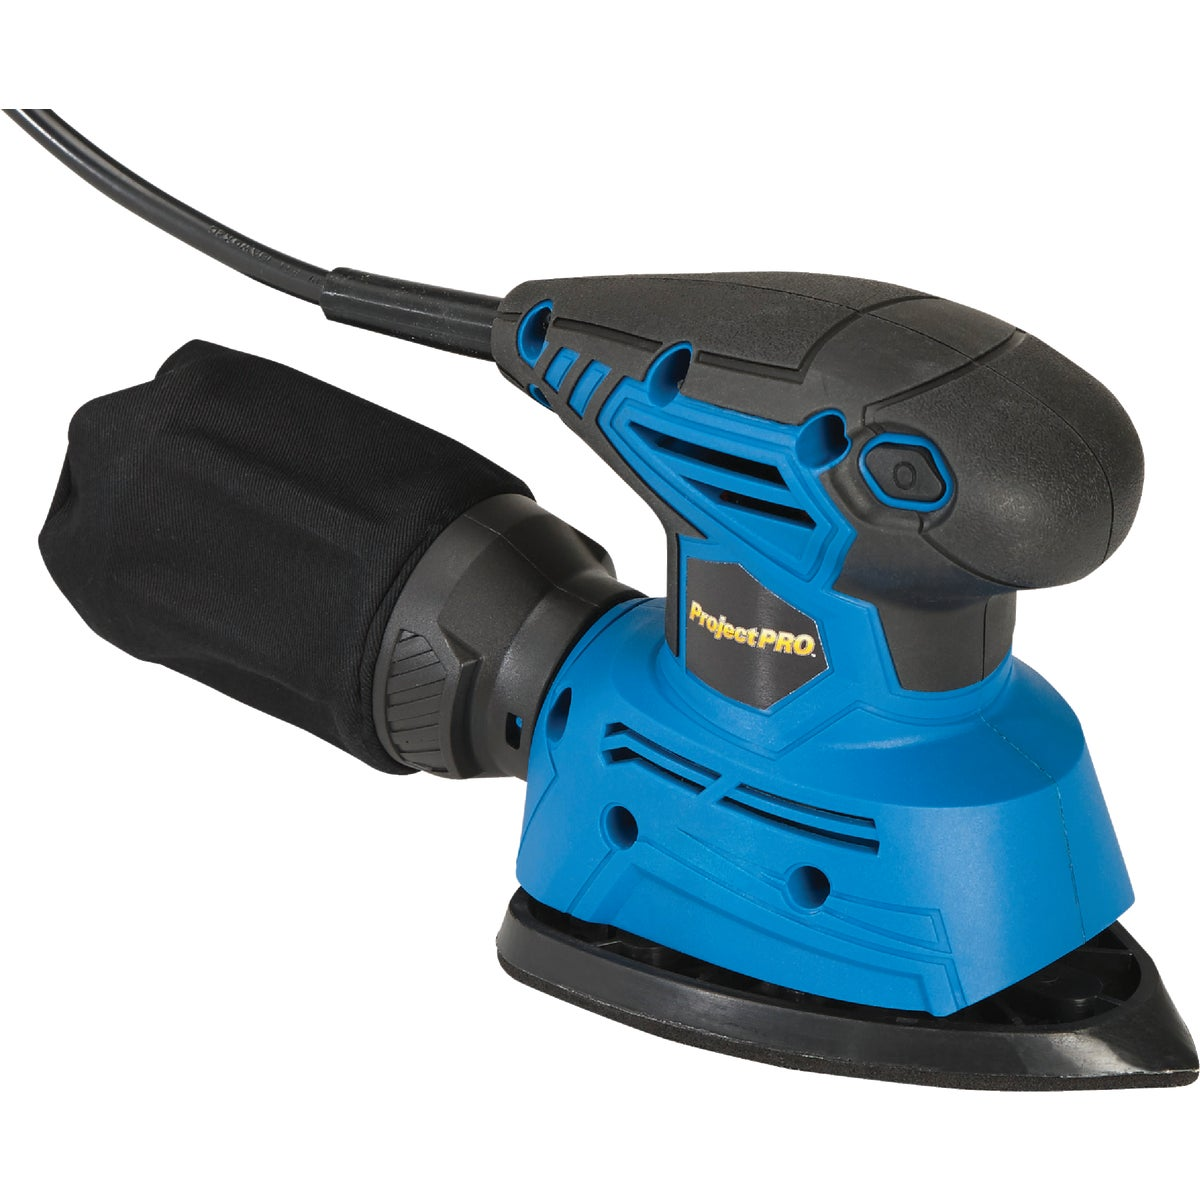 0.8A DETAIL PALM SANDER - 323420 by Do it Best